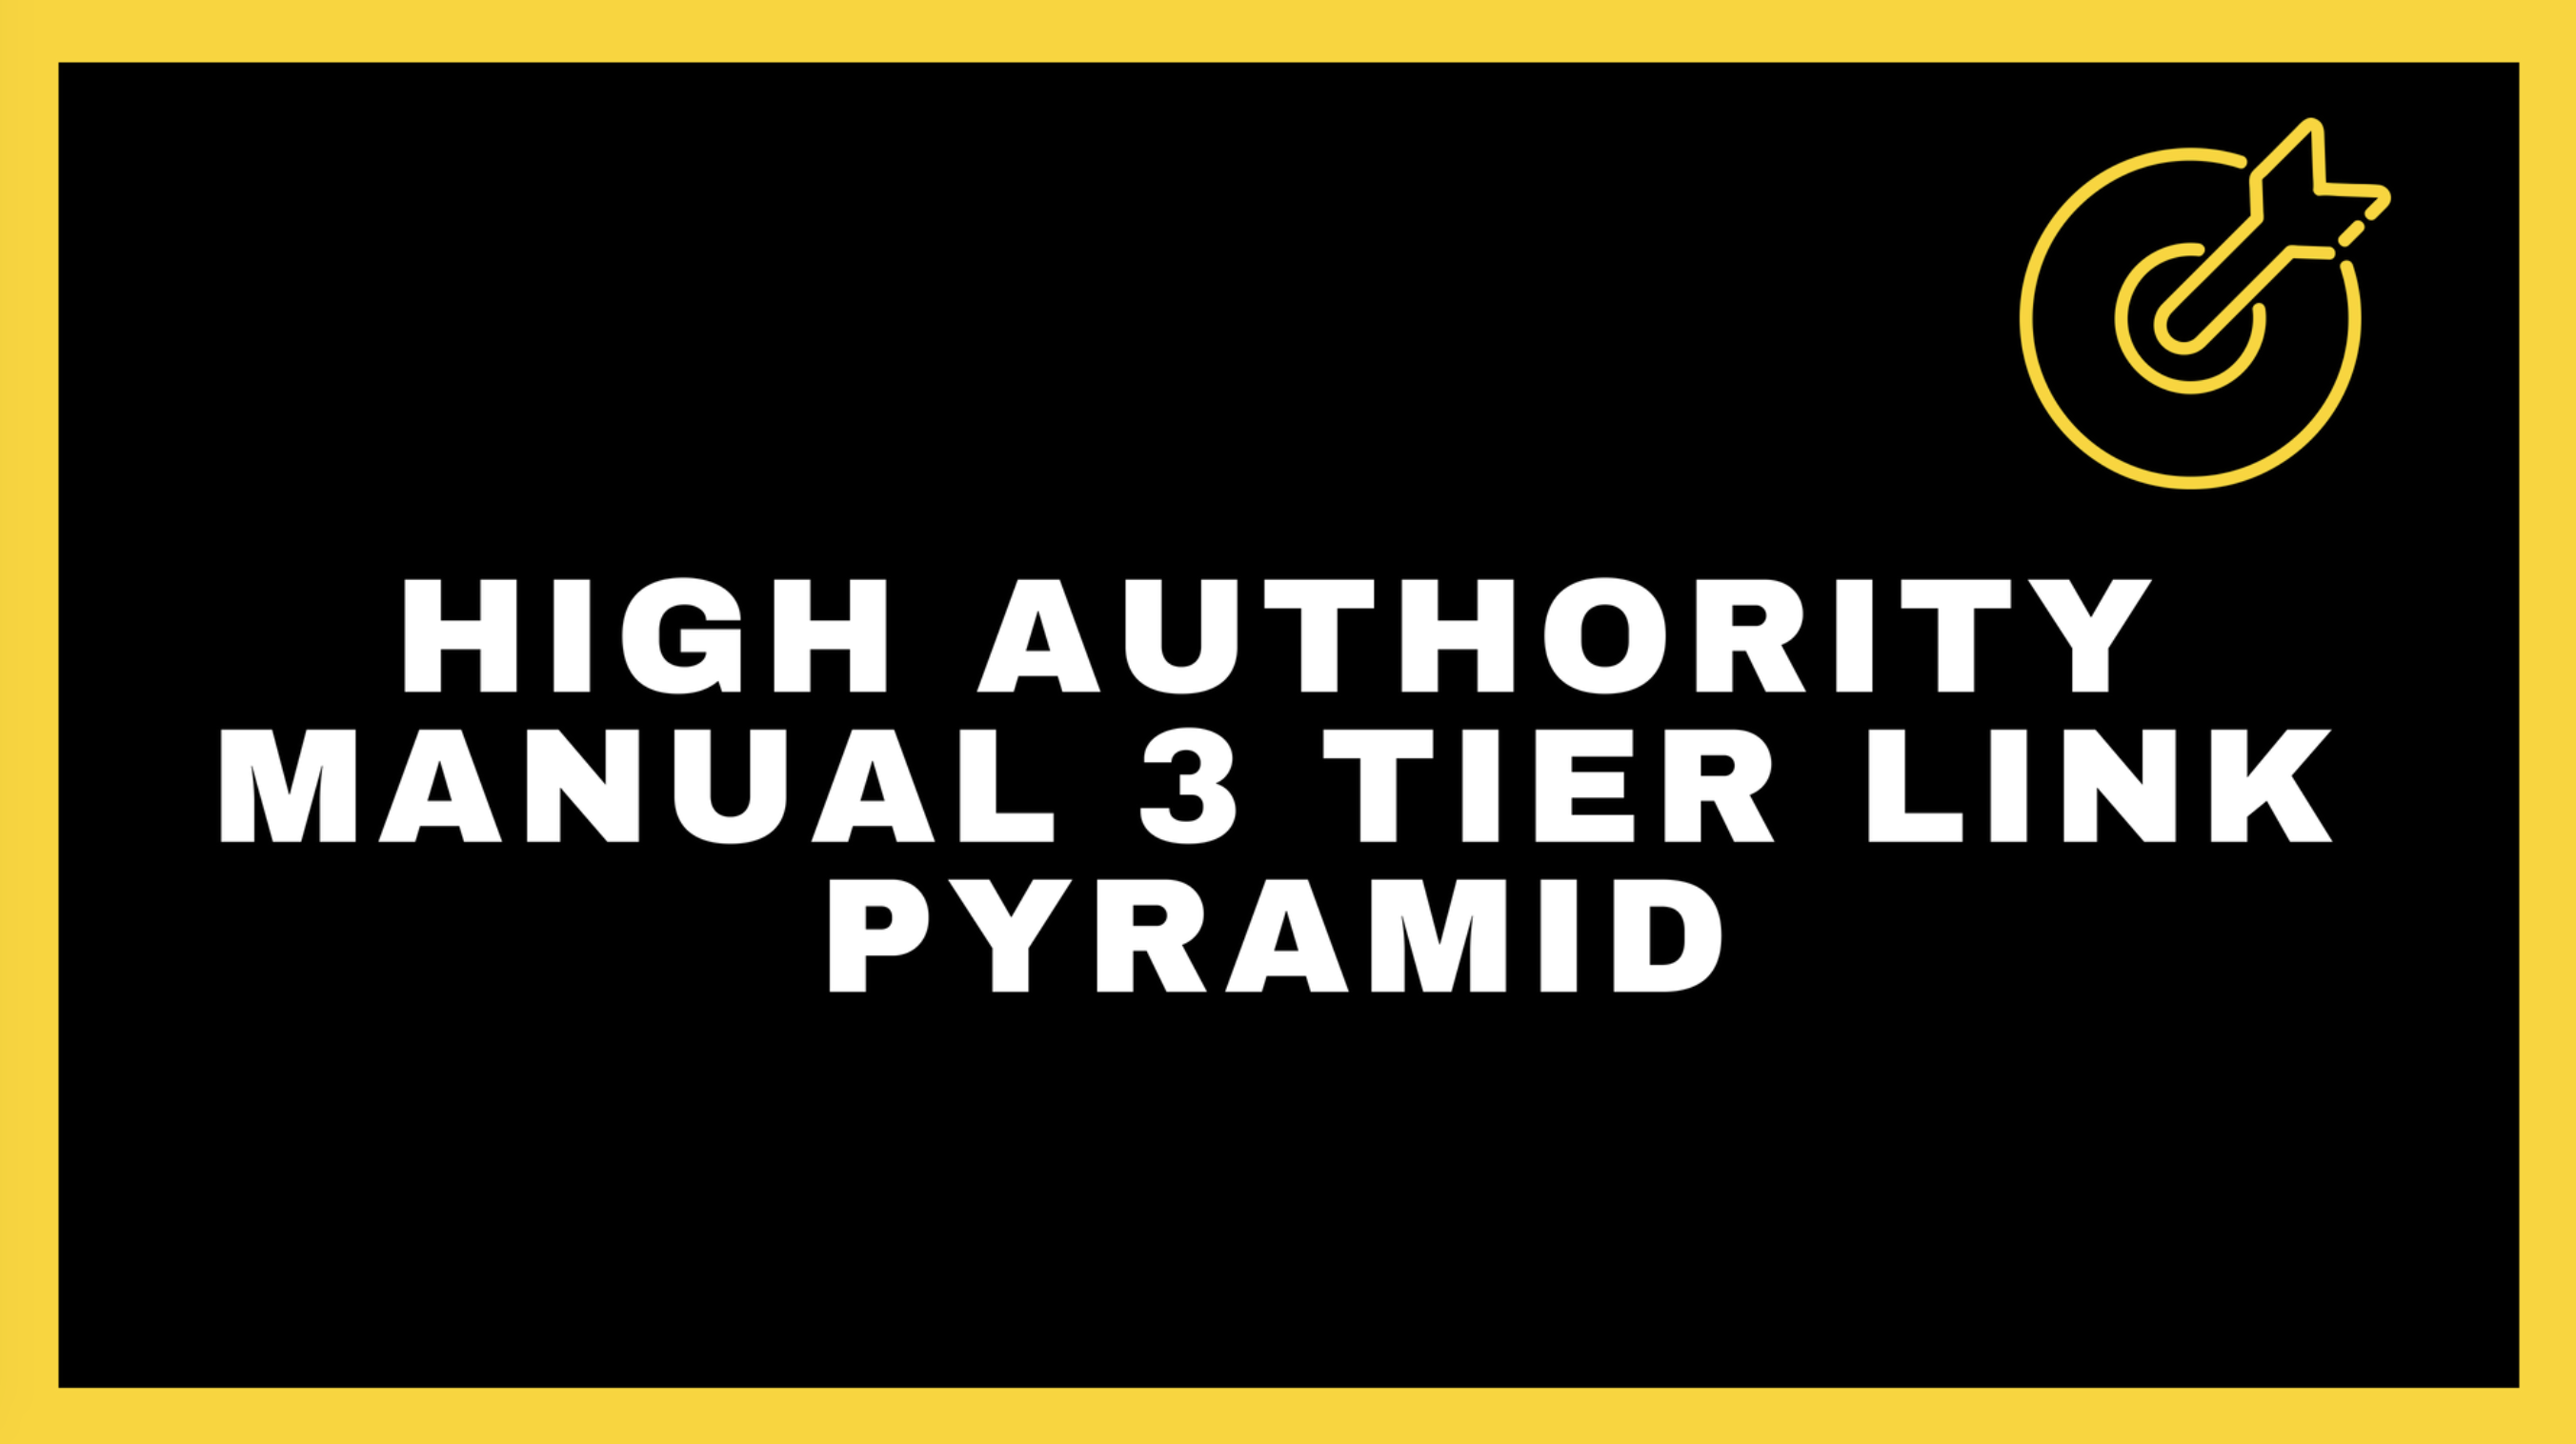 Google 1st Page Pusher - High Authority Manual 3 Tier Link Pyramid